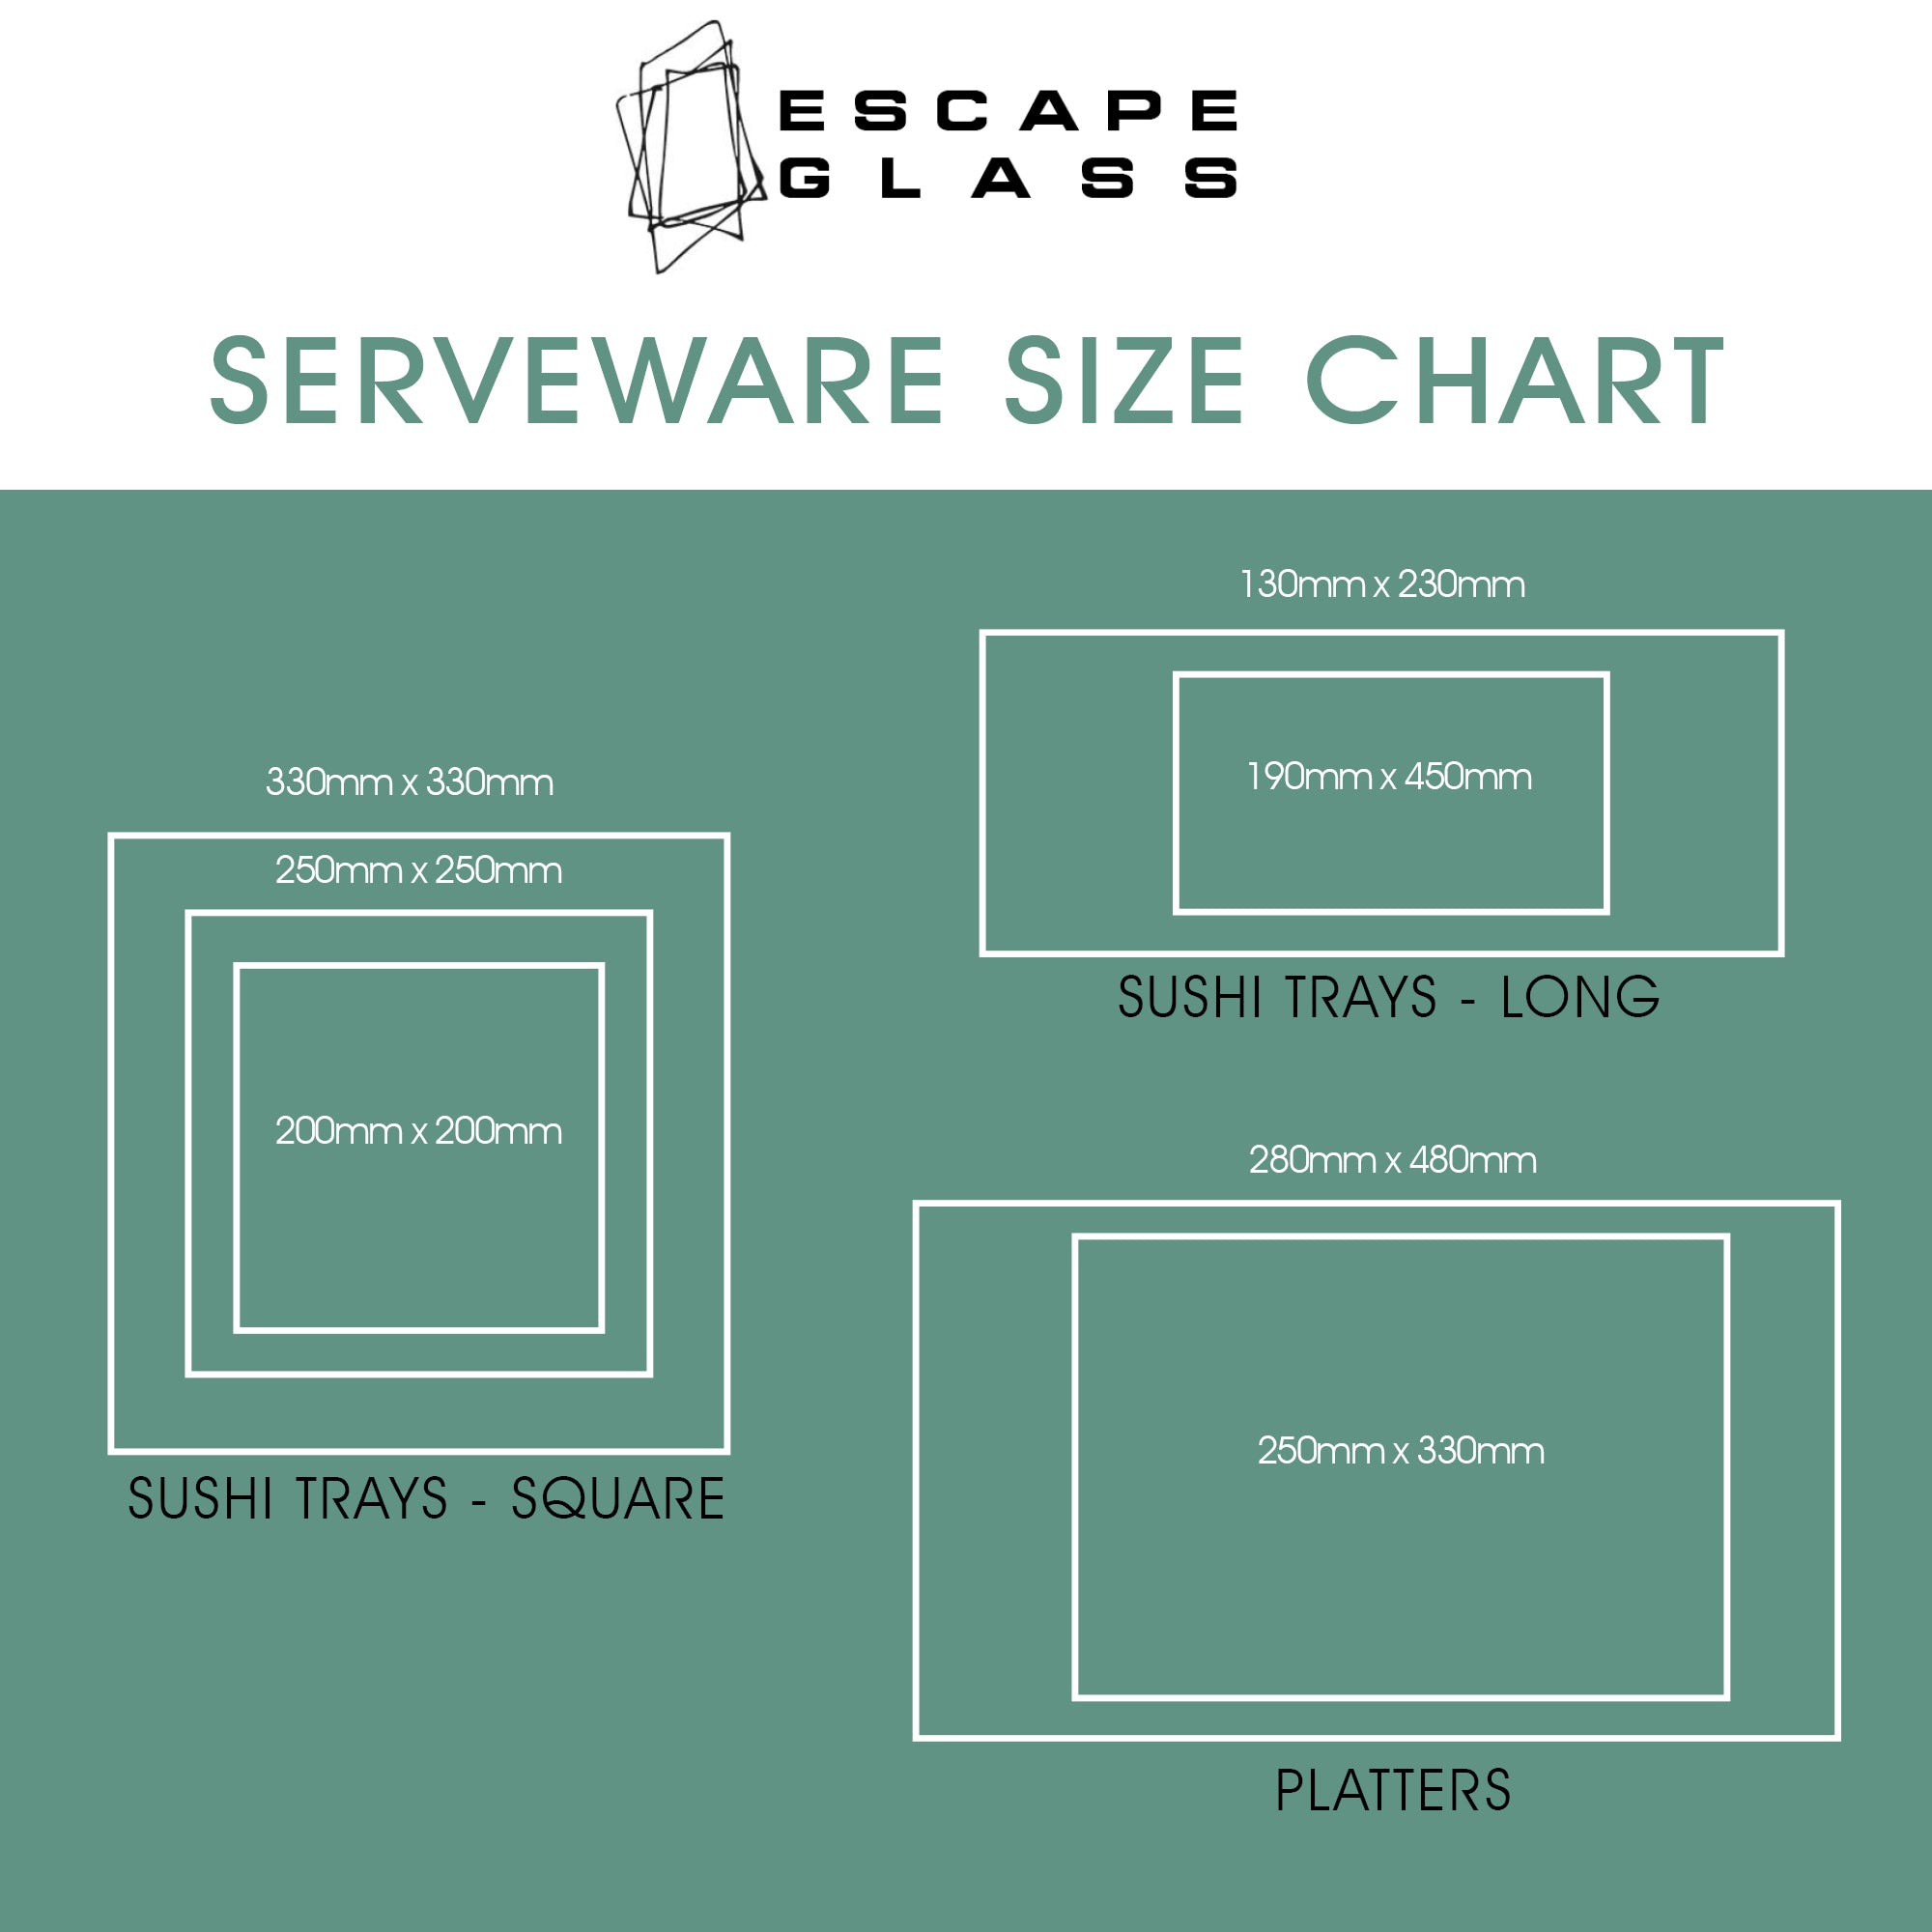 Tray sizing chart for platters and serveware at escape glass invercargill new zealand